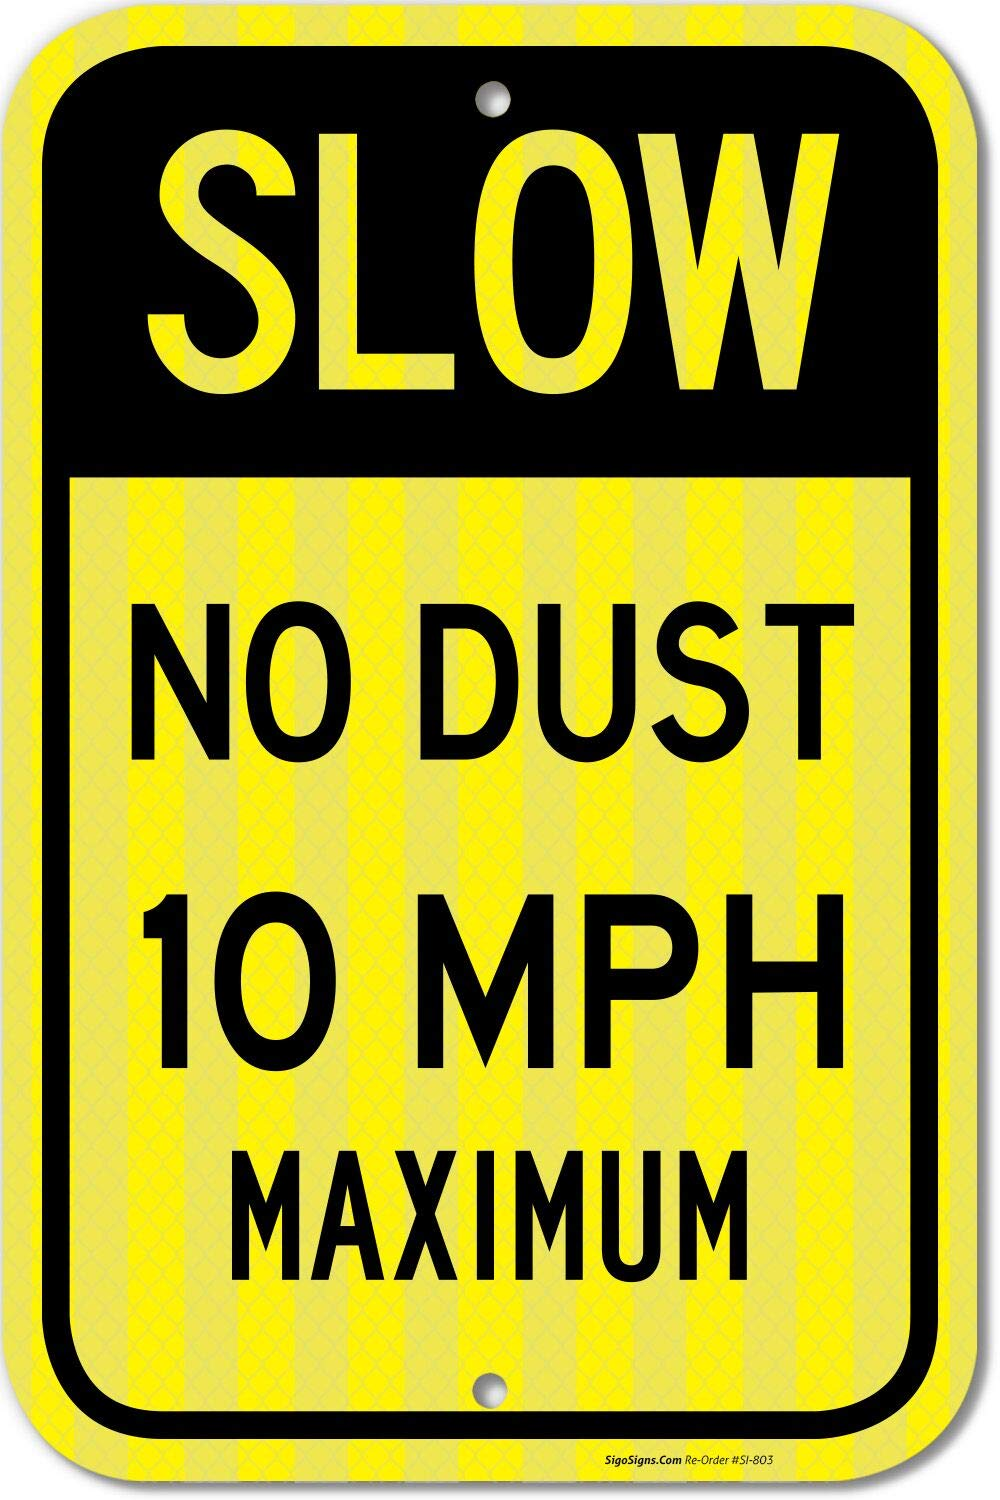 Slow Down Sign, Speed Limit 10 MPH Sign, No Dust Sign, 12x18 3M Reflective (EGP) Rust Free .63 Aluminum, Easy to Mount Weather Resistant Long Lasting Ink, Made in USA by SIGO SIGNS